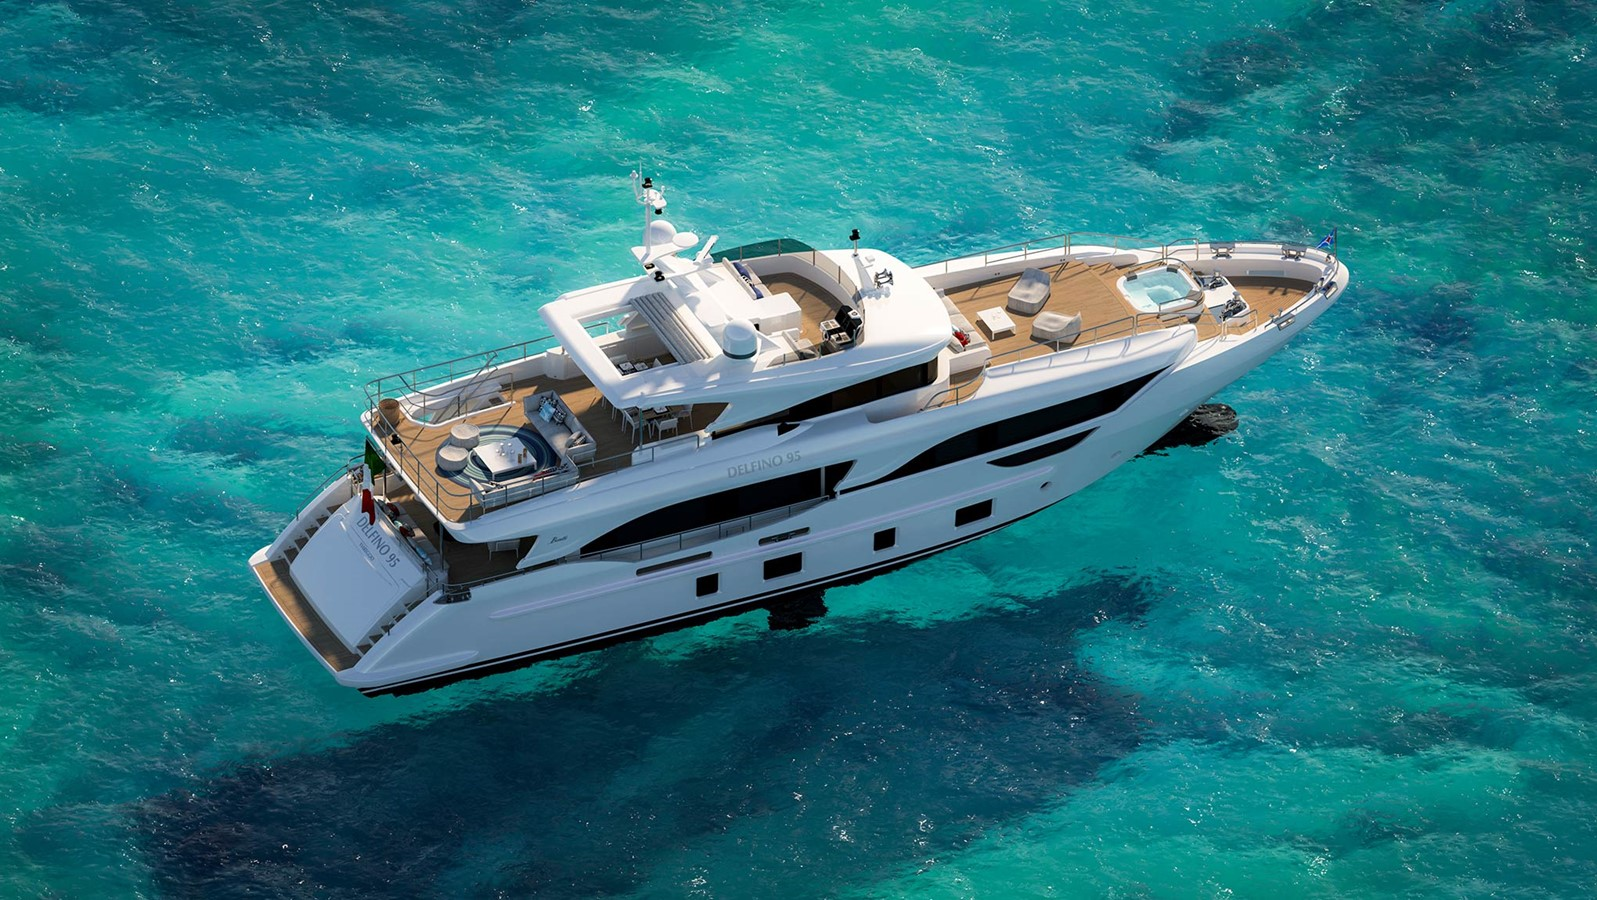 TBD yacht for sale